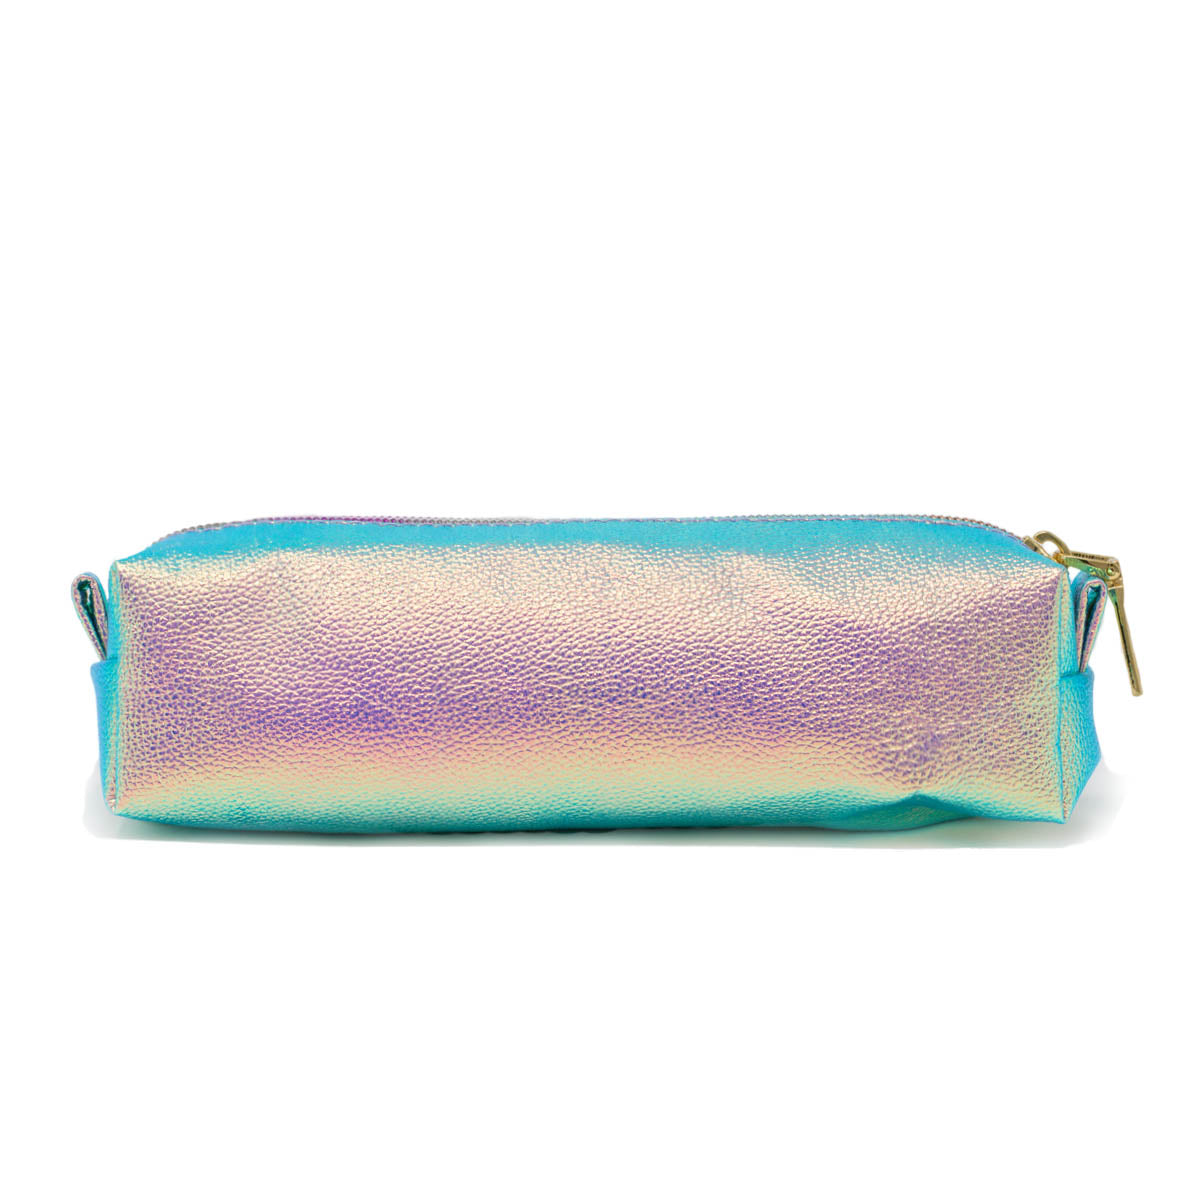 Back view of iridescent pink pencil bag.